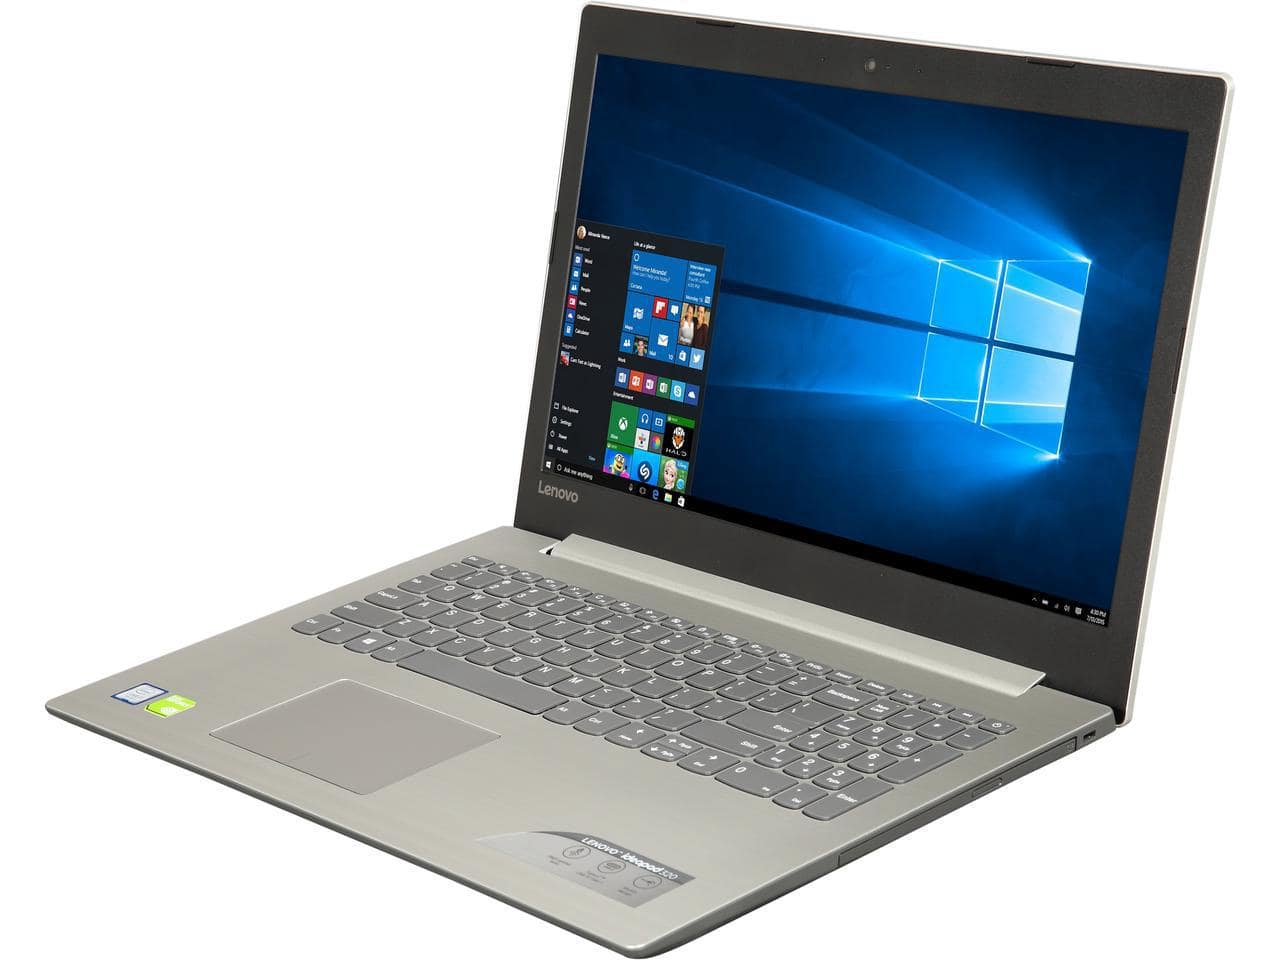 Lenovo Laptop IdeaPad 320 80XL03BQUS i7 - $649.99